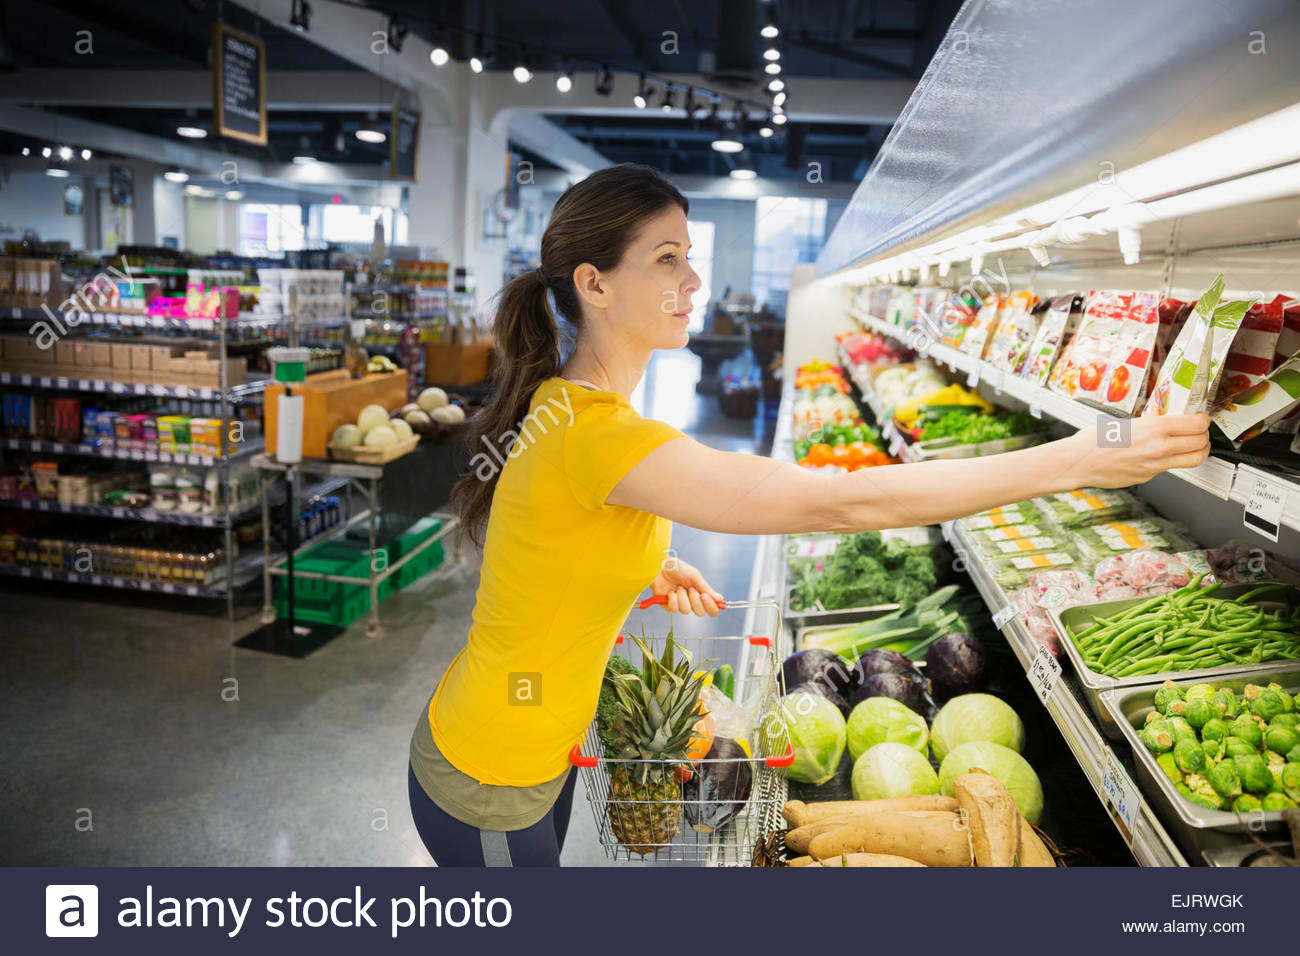 Woman shopping for produce in grocery store - Stock Image